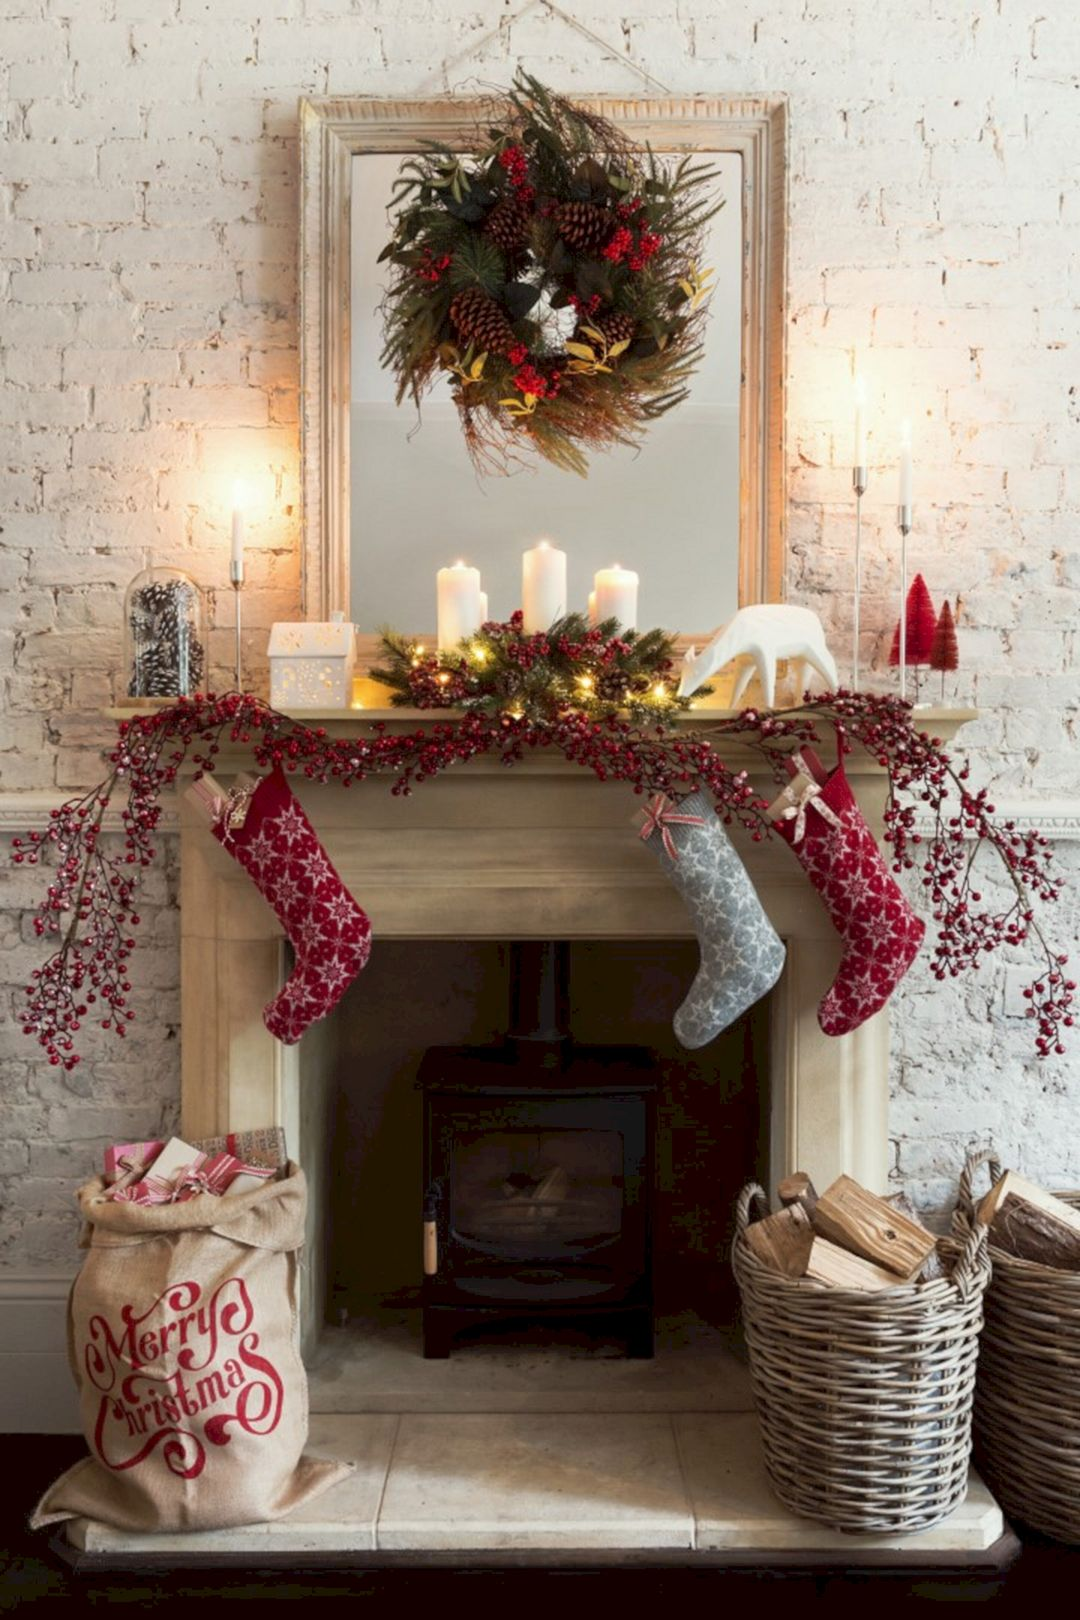 Living Room Christmas Decor Ideas And Tips For Bringing ...